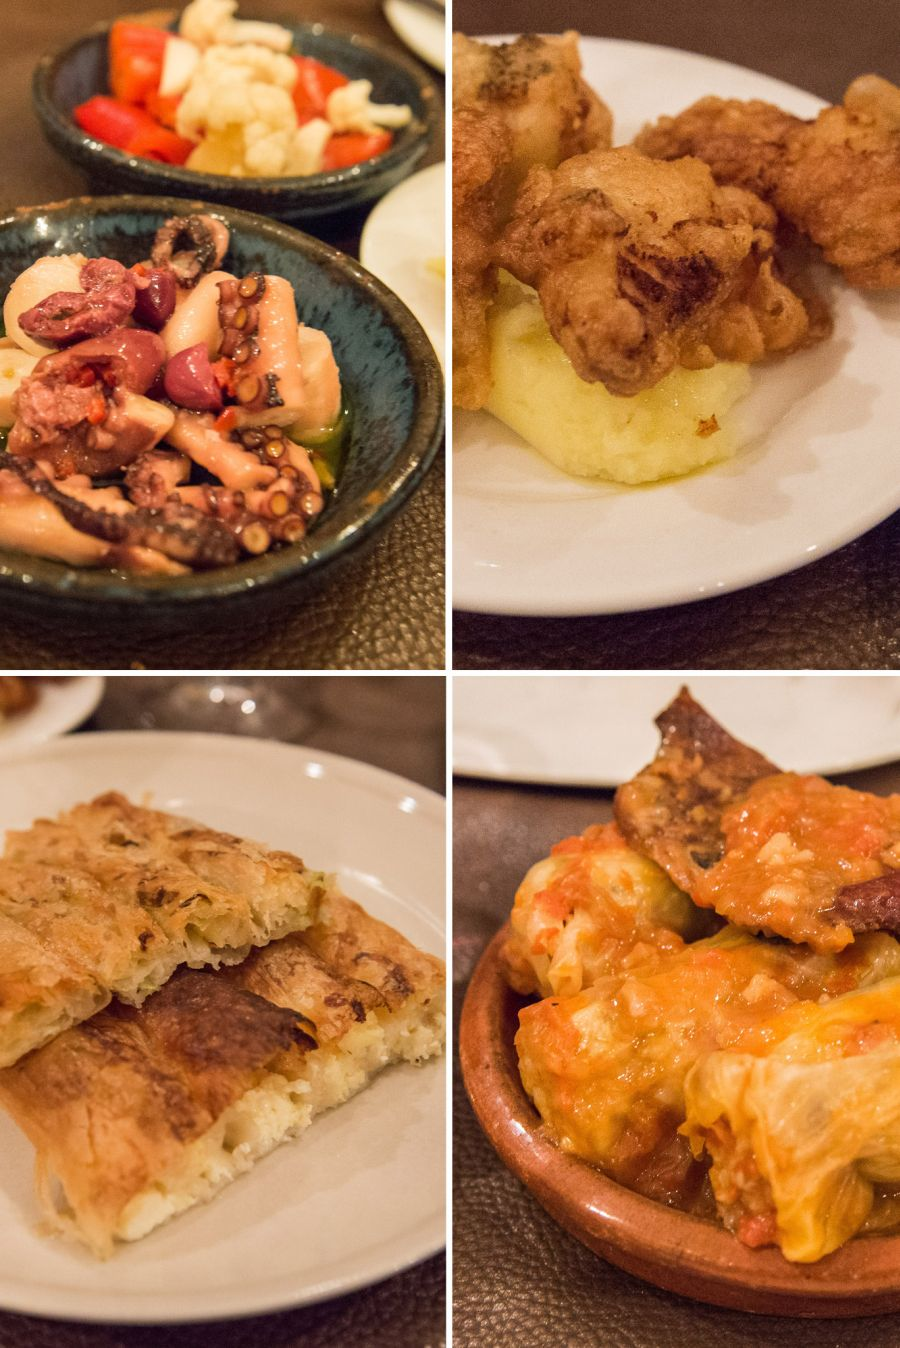 Clockwise from top left: salate od hobotnice (slow-cooked octopus, shallot, olive, EVOO); skordalia (shallow fried salt cod and garlicky potato puree); sarma (braised veal and pork, stuffed pickled cabbage, smoked bacon); guba so ciren (cheese and leek burek)